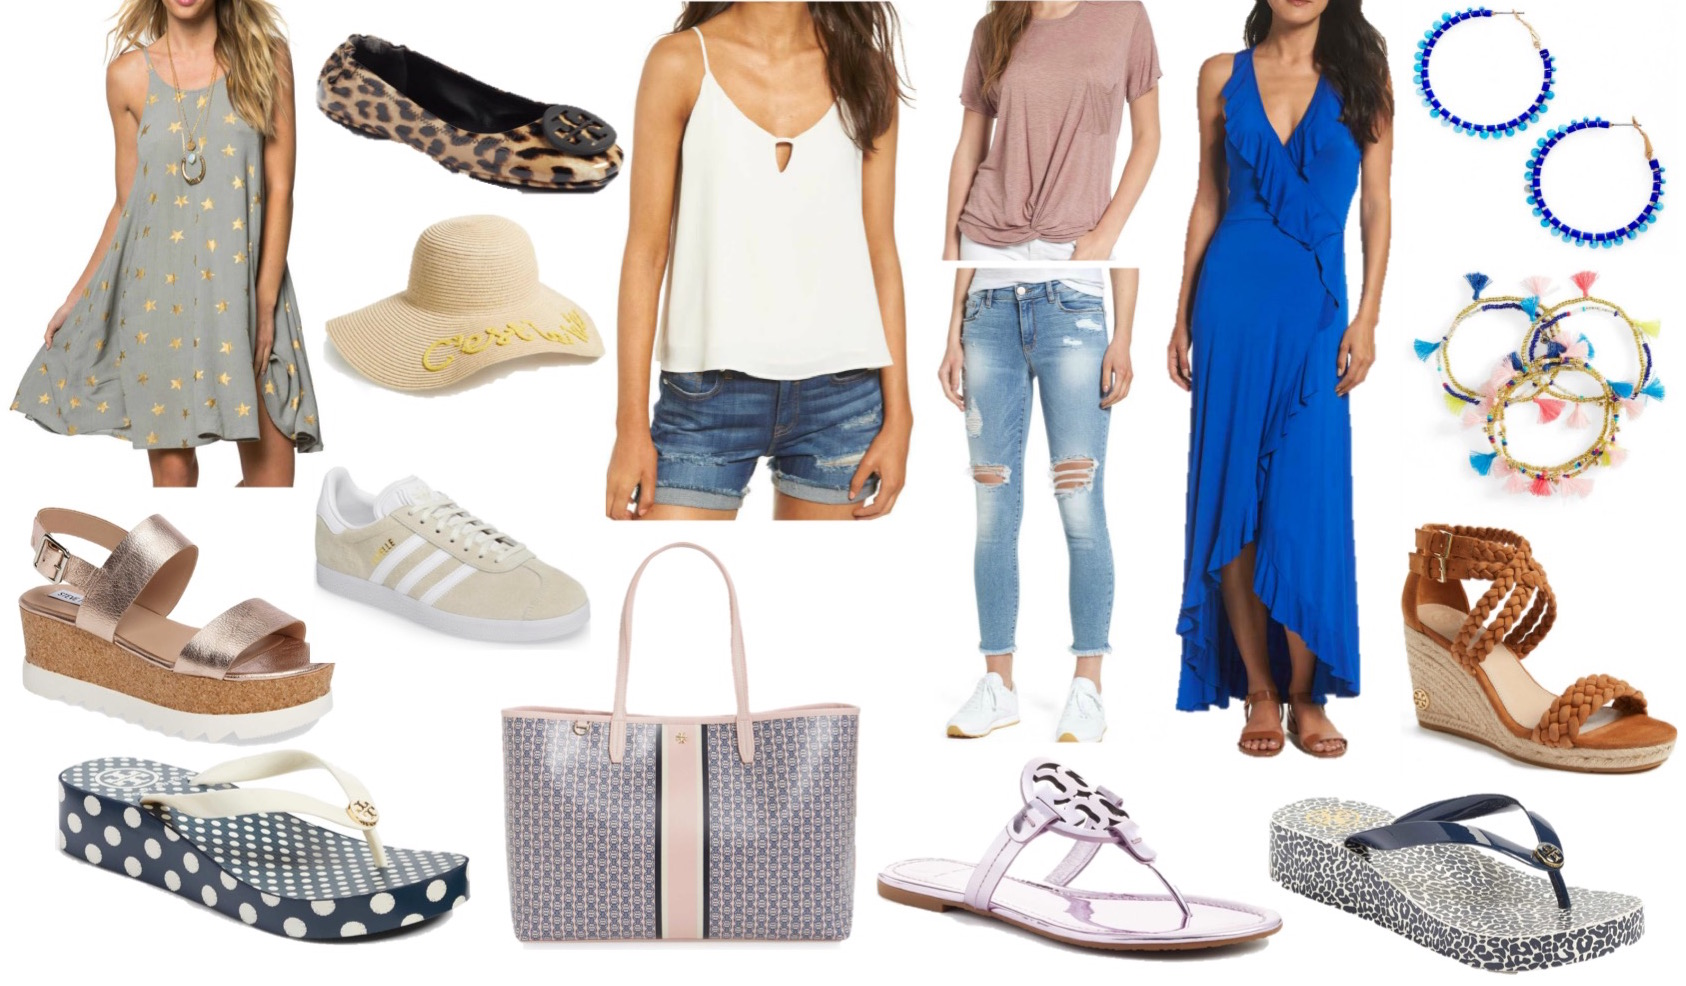 19e4206b9279 Hopefully it will help you style some easy Summer outfits that are as cute  as they are comfortable! I will also share some of my favorites from this  week!